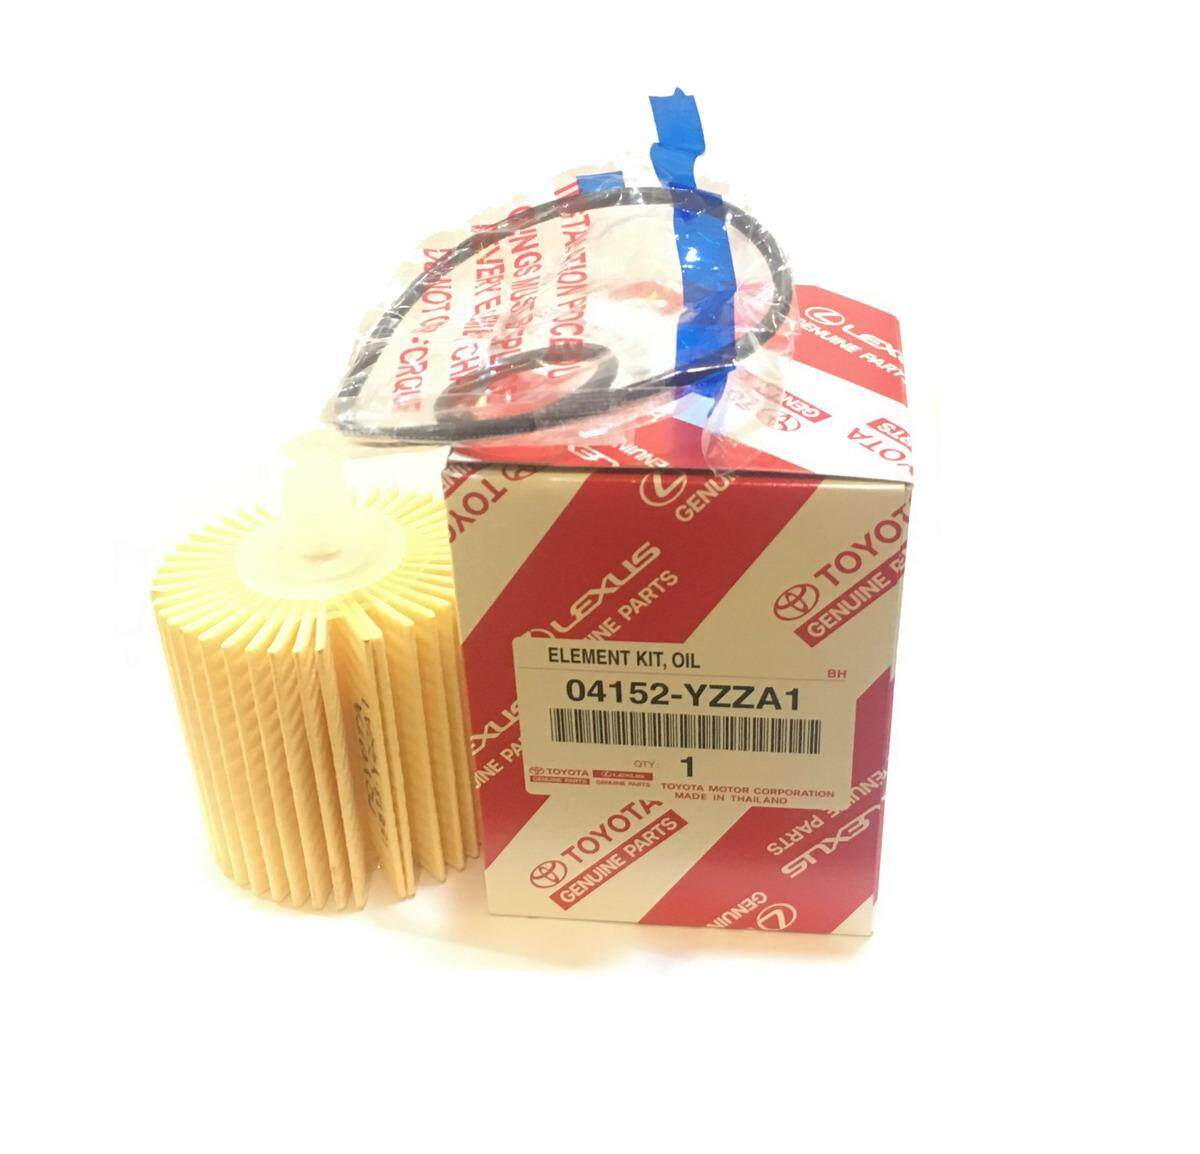 Toyota Auto Parts Spares Price In Malaysia Best 1998 Camry Fuel Filter Location Oil Yzza1